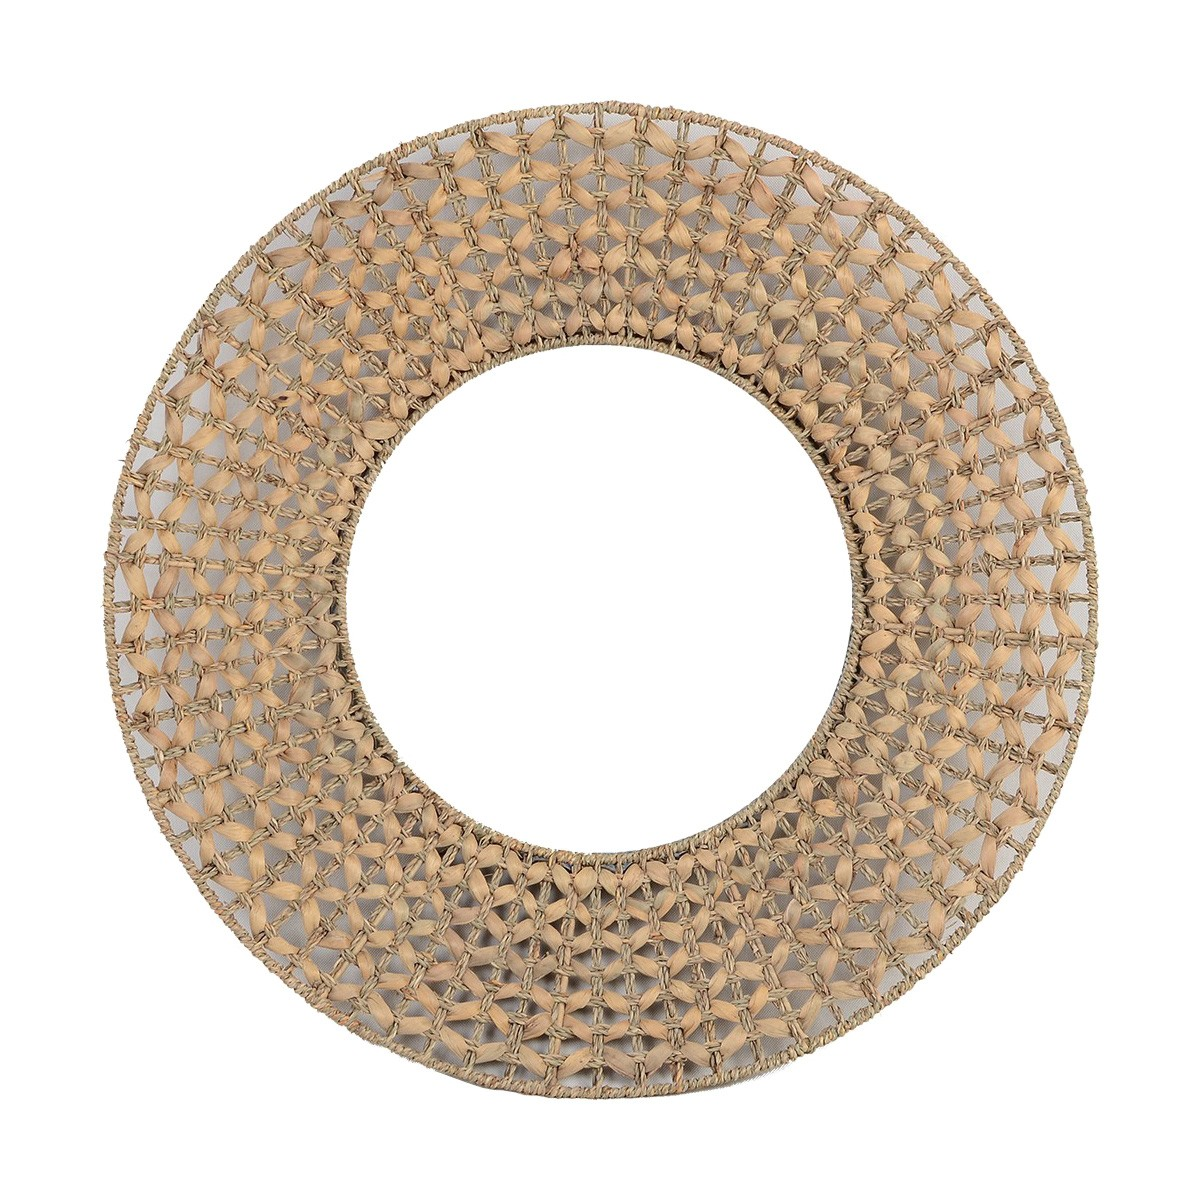 Palma Woven Water Hyacinth Frame Round Wall Mirror, 70cm, Natural